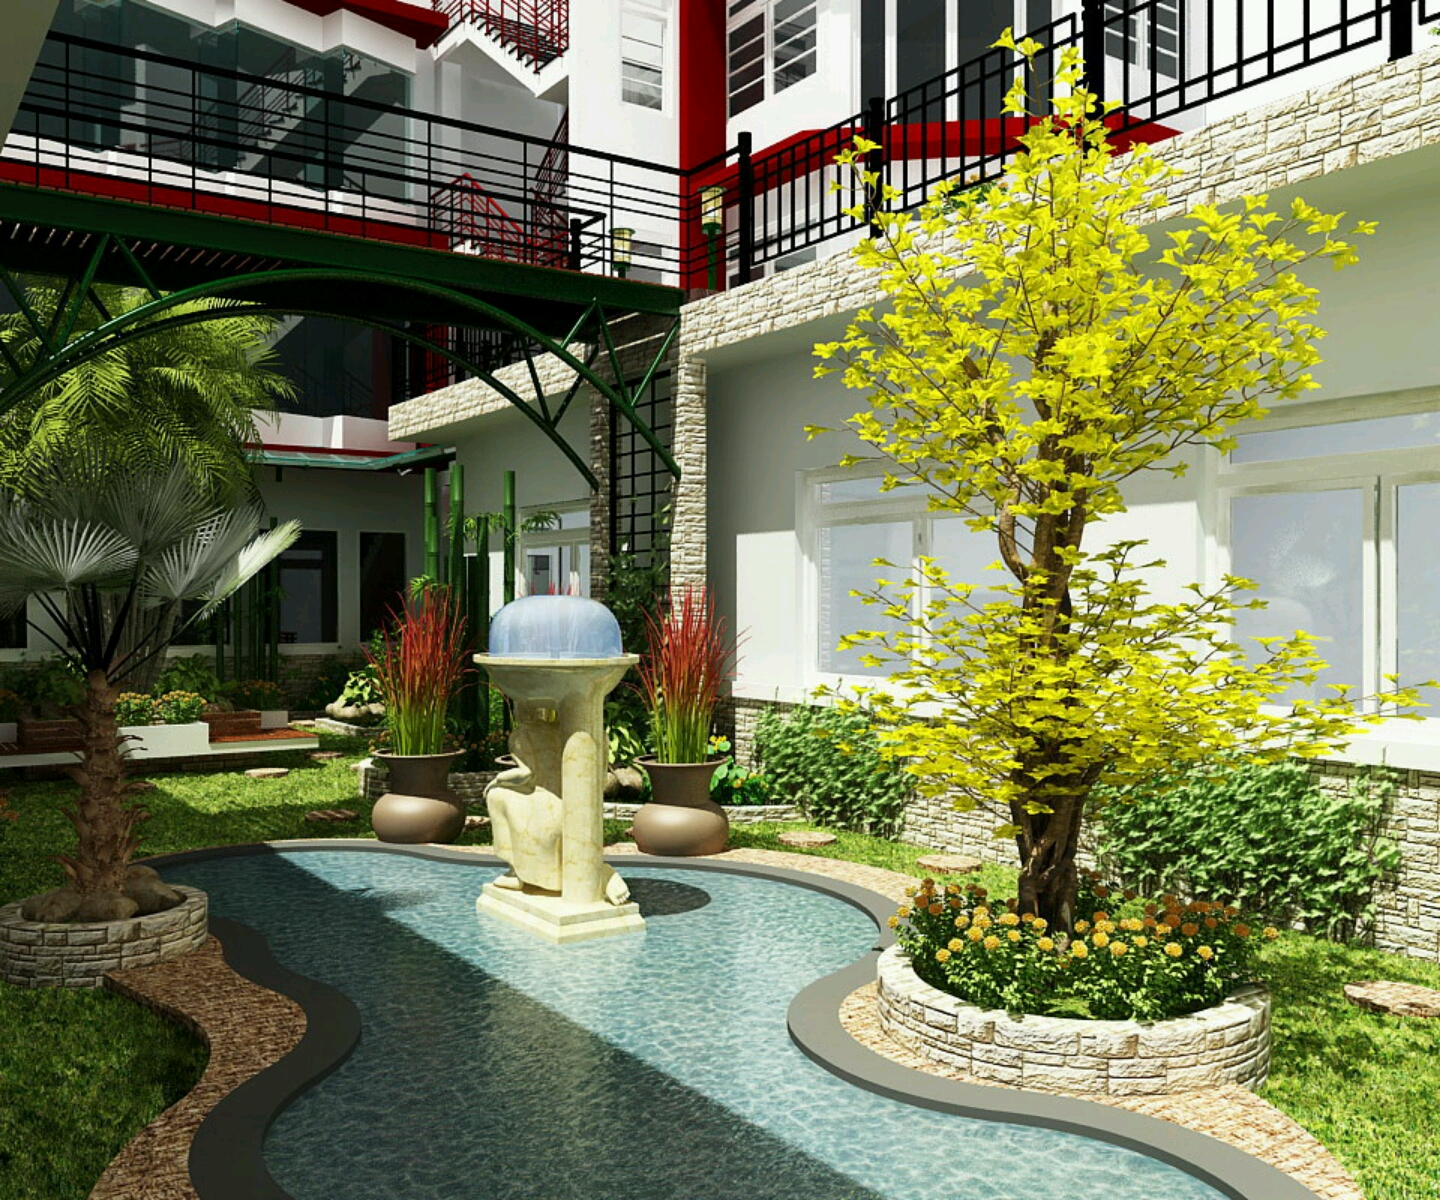 New blog here modern garden house design Home design ideas pictures remodel and decor